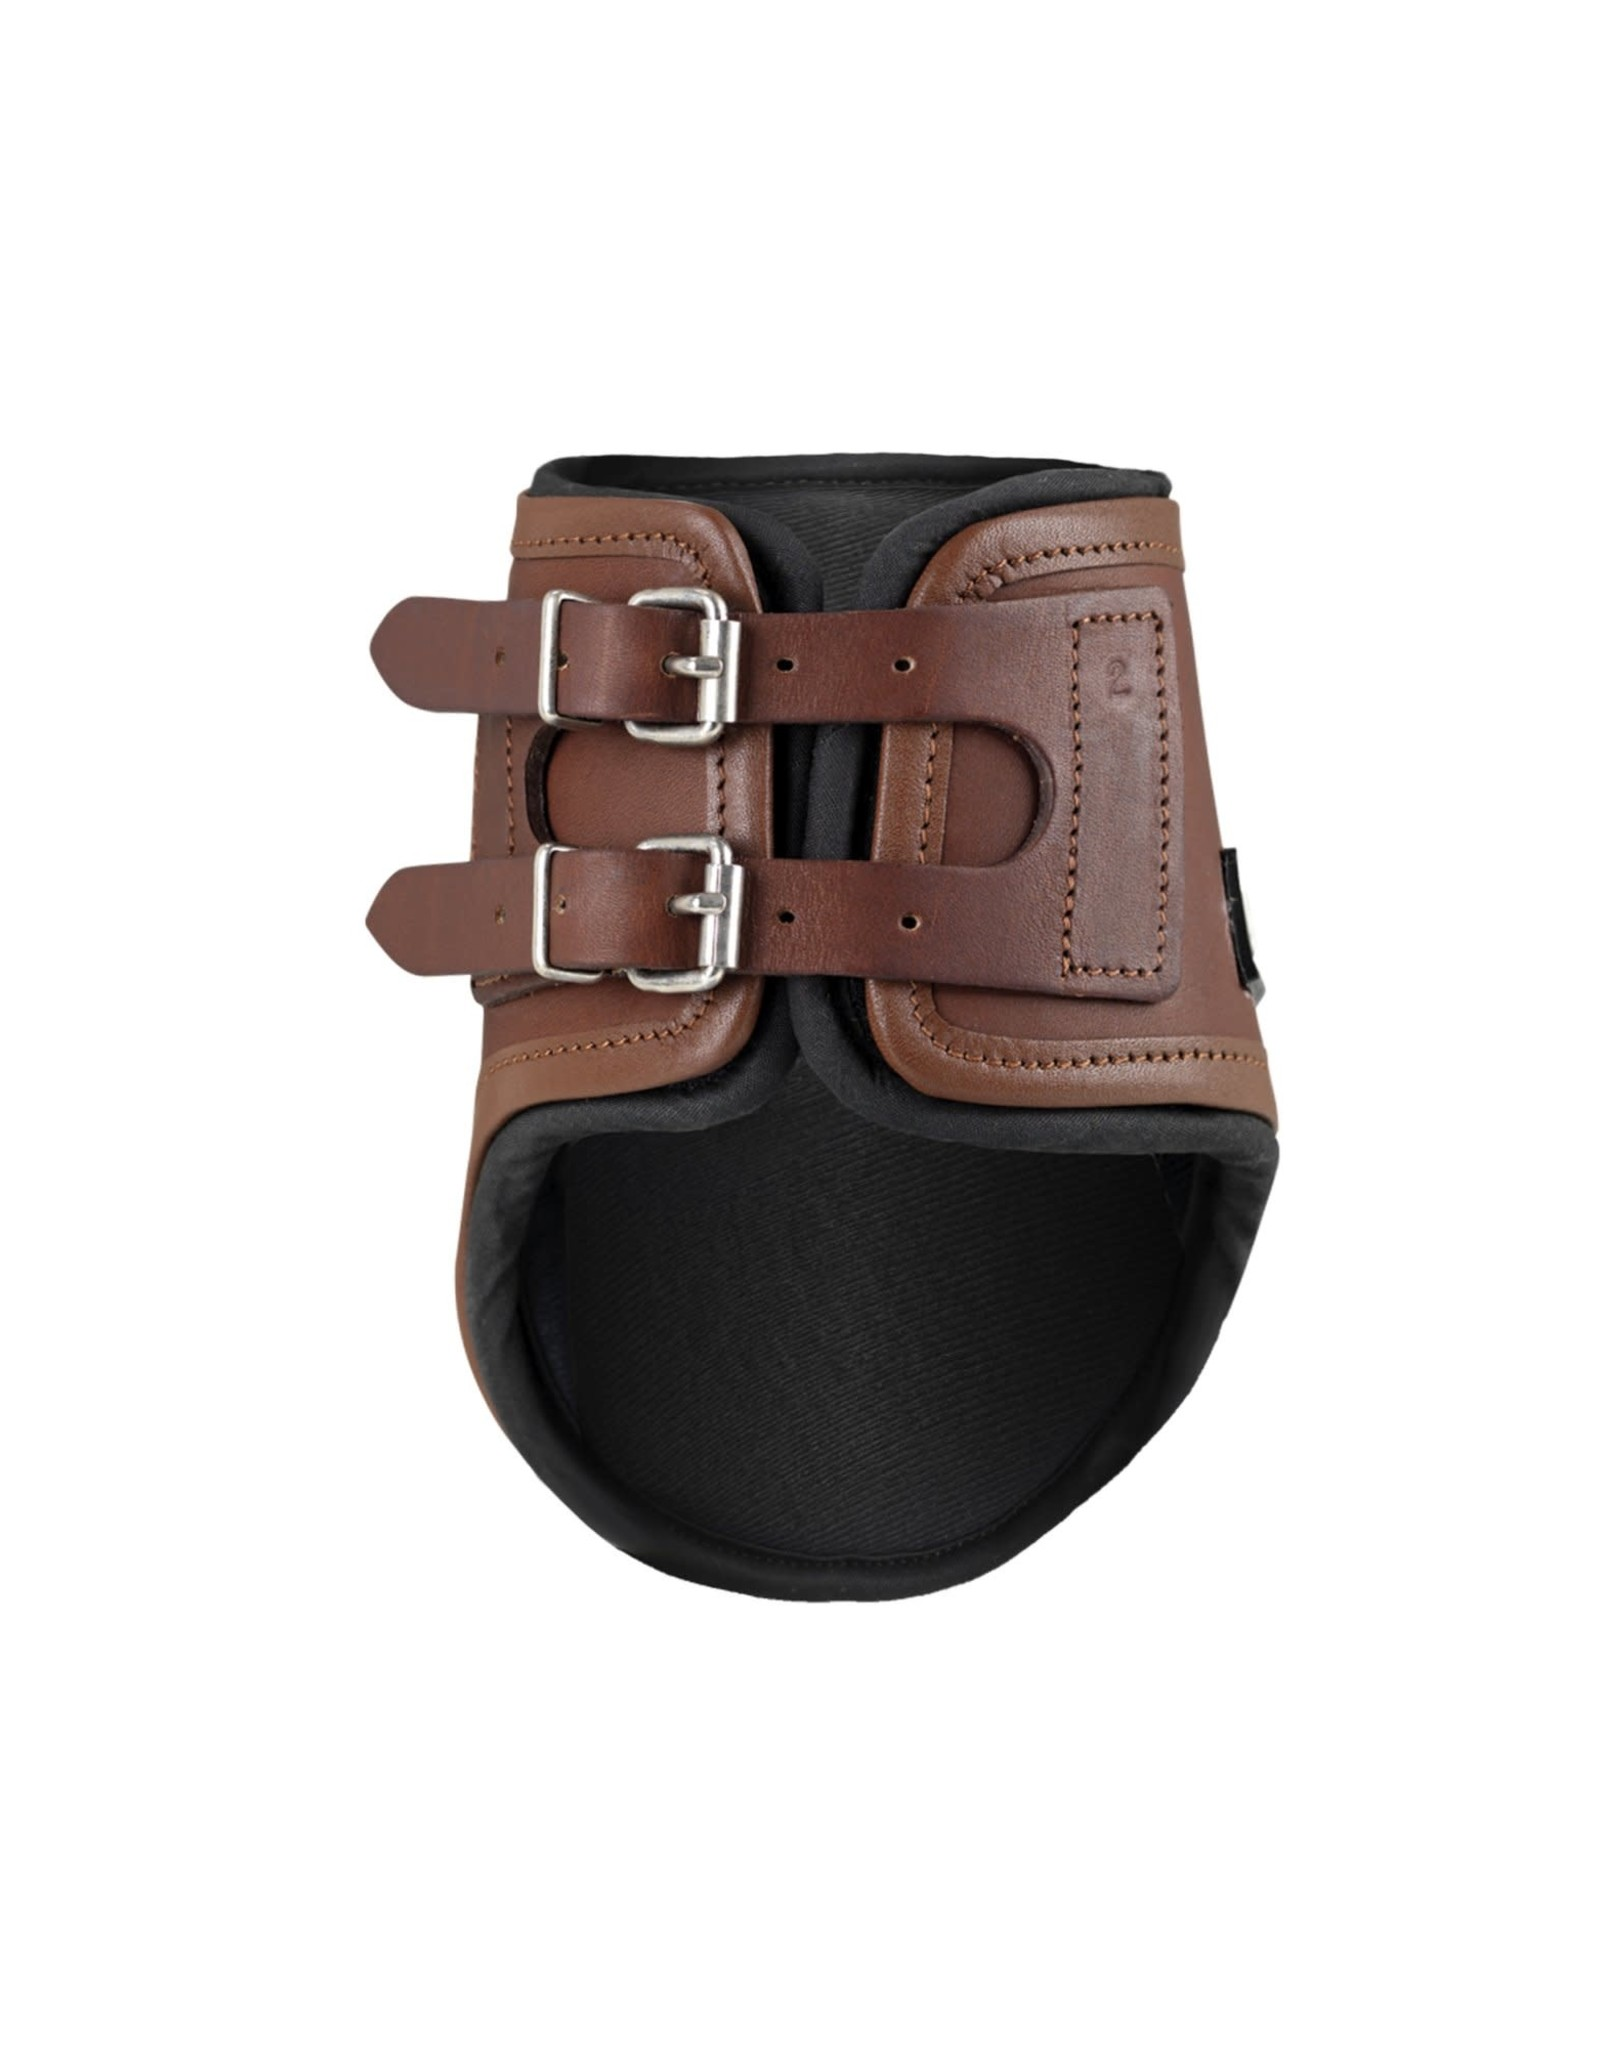 EQUIFIT T-BOOT LUXE™ HIND BOOT